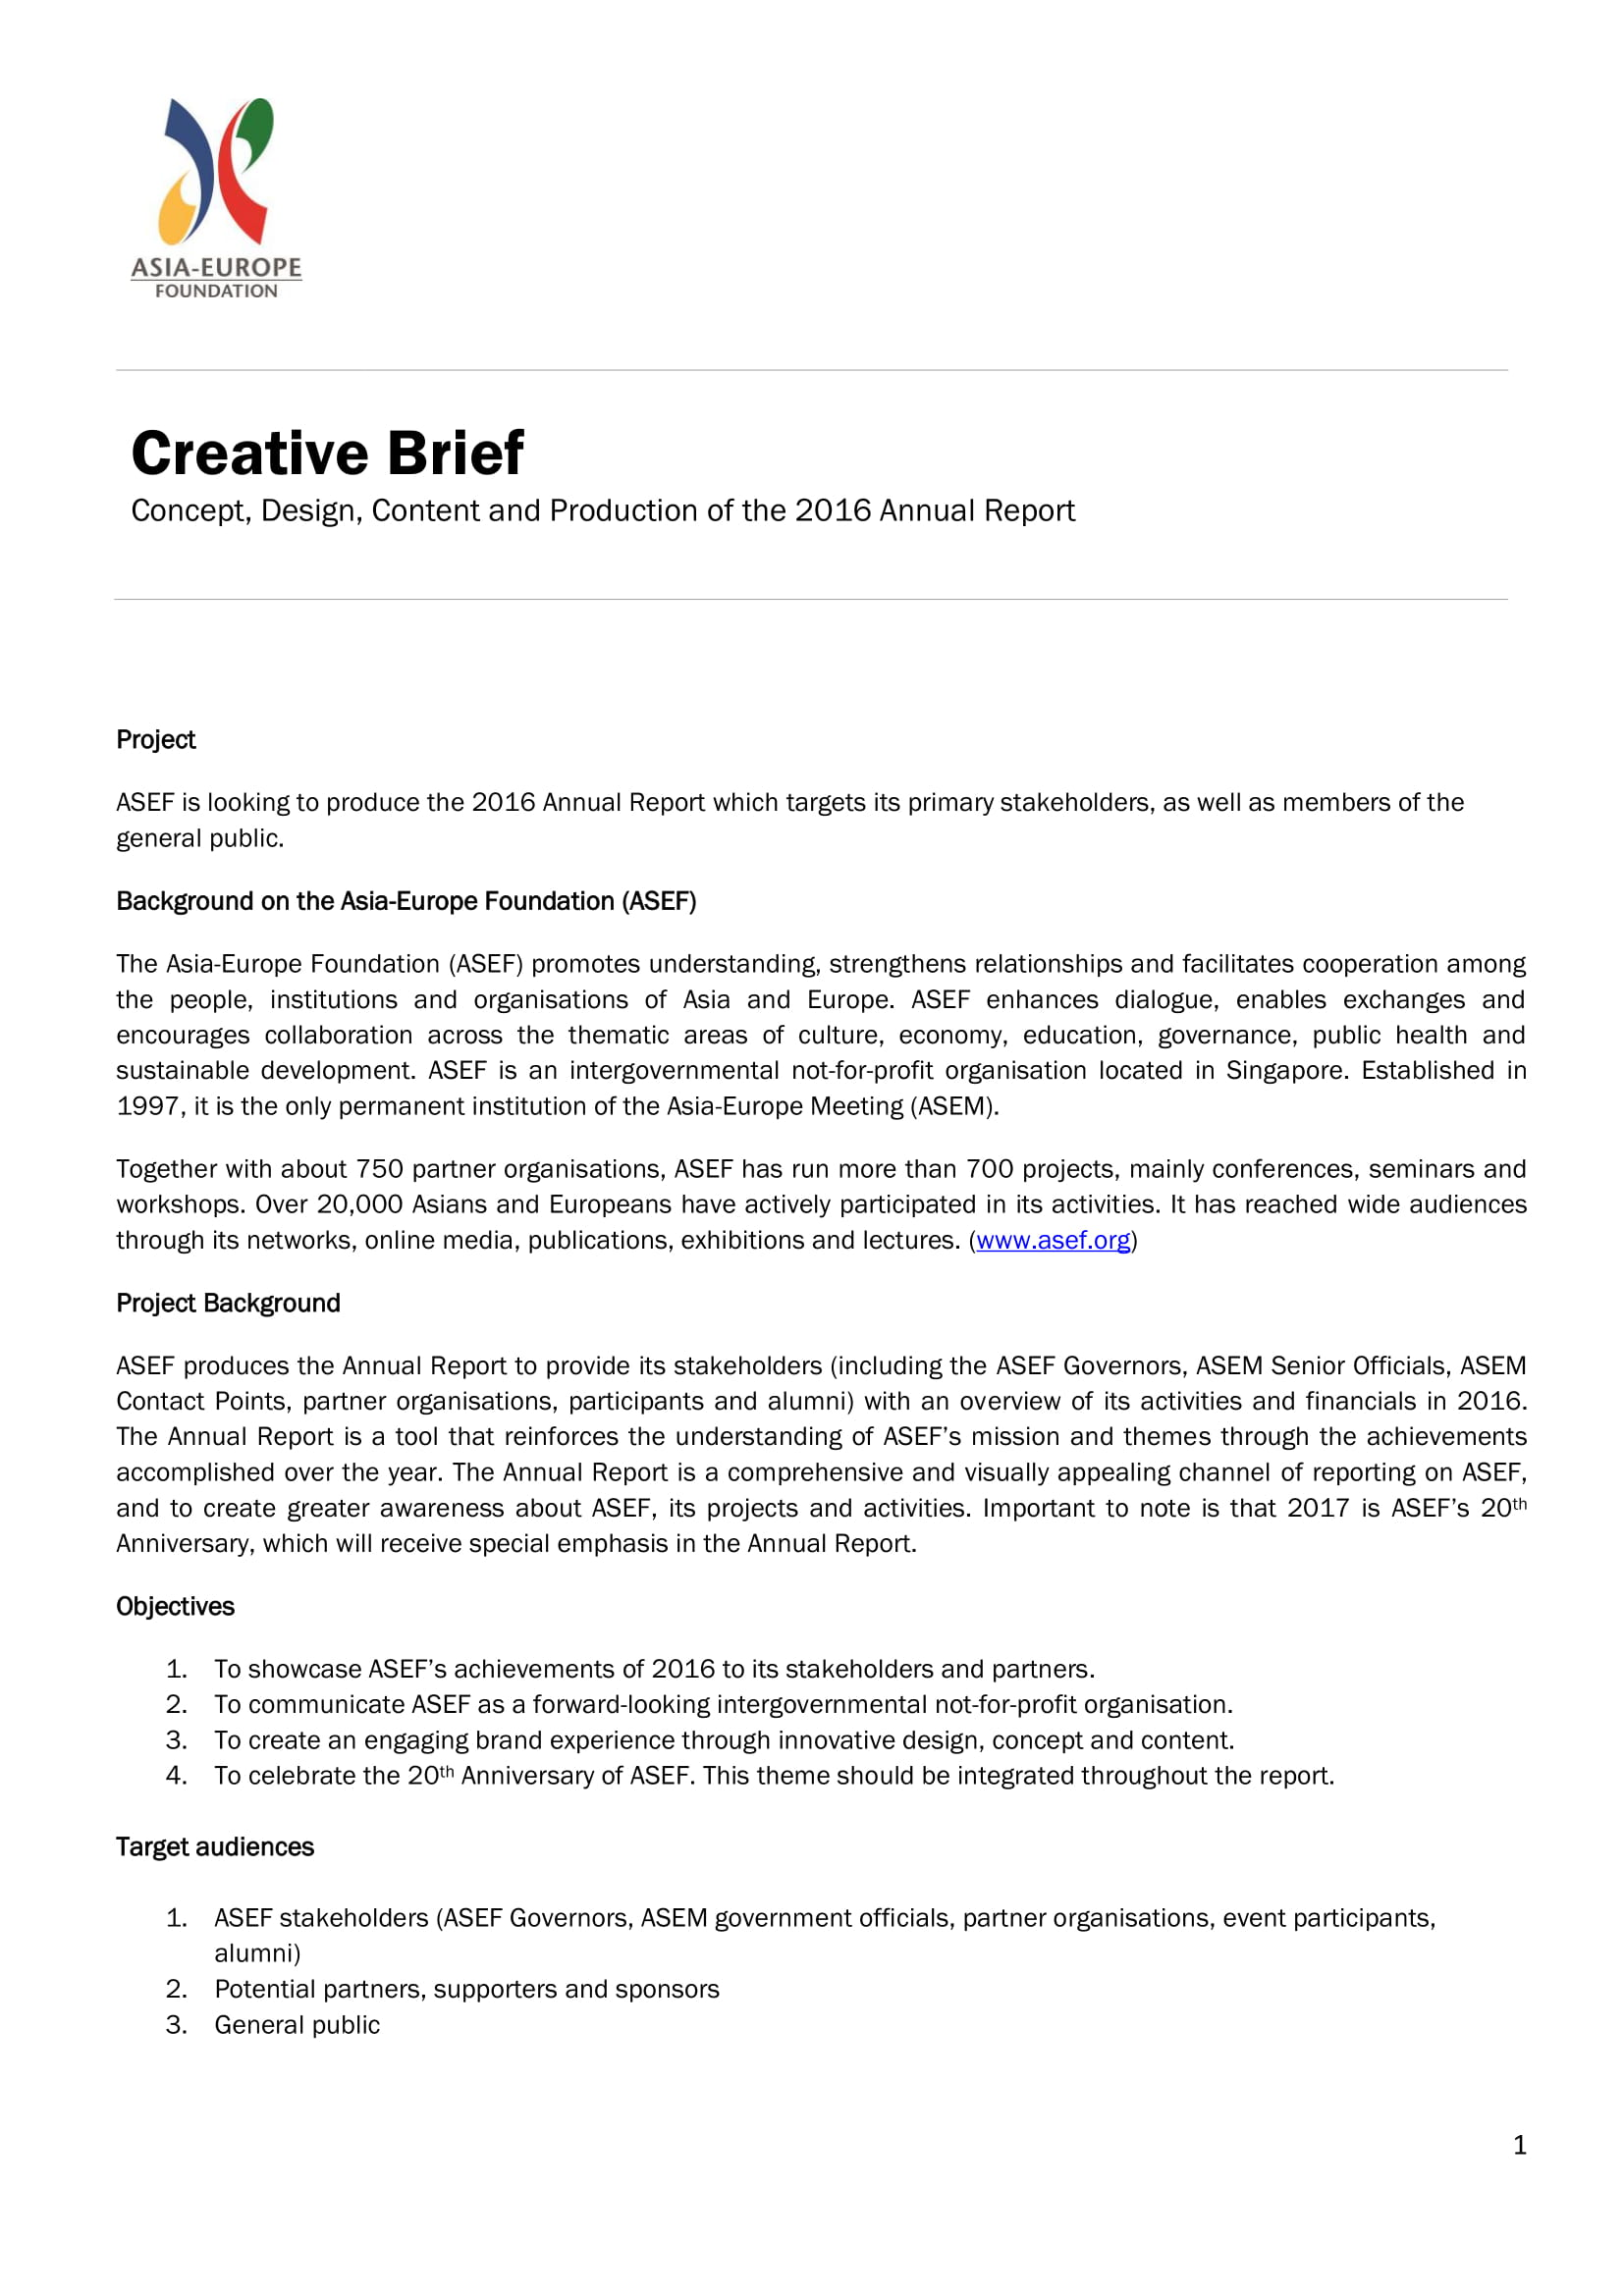 asia europe foundation asef creative brief example